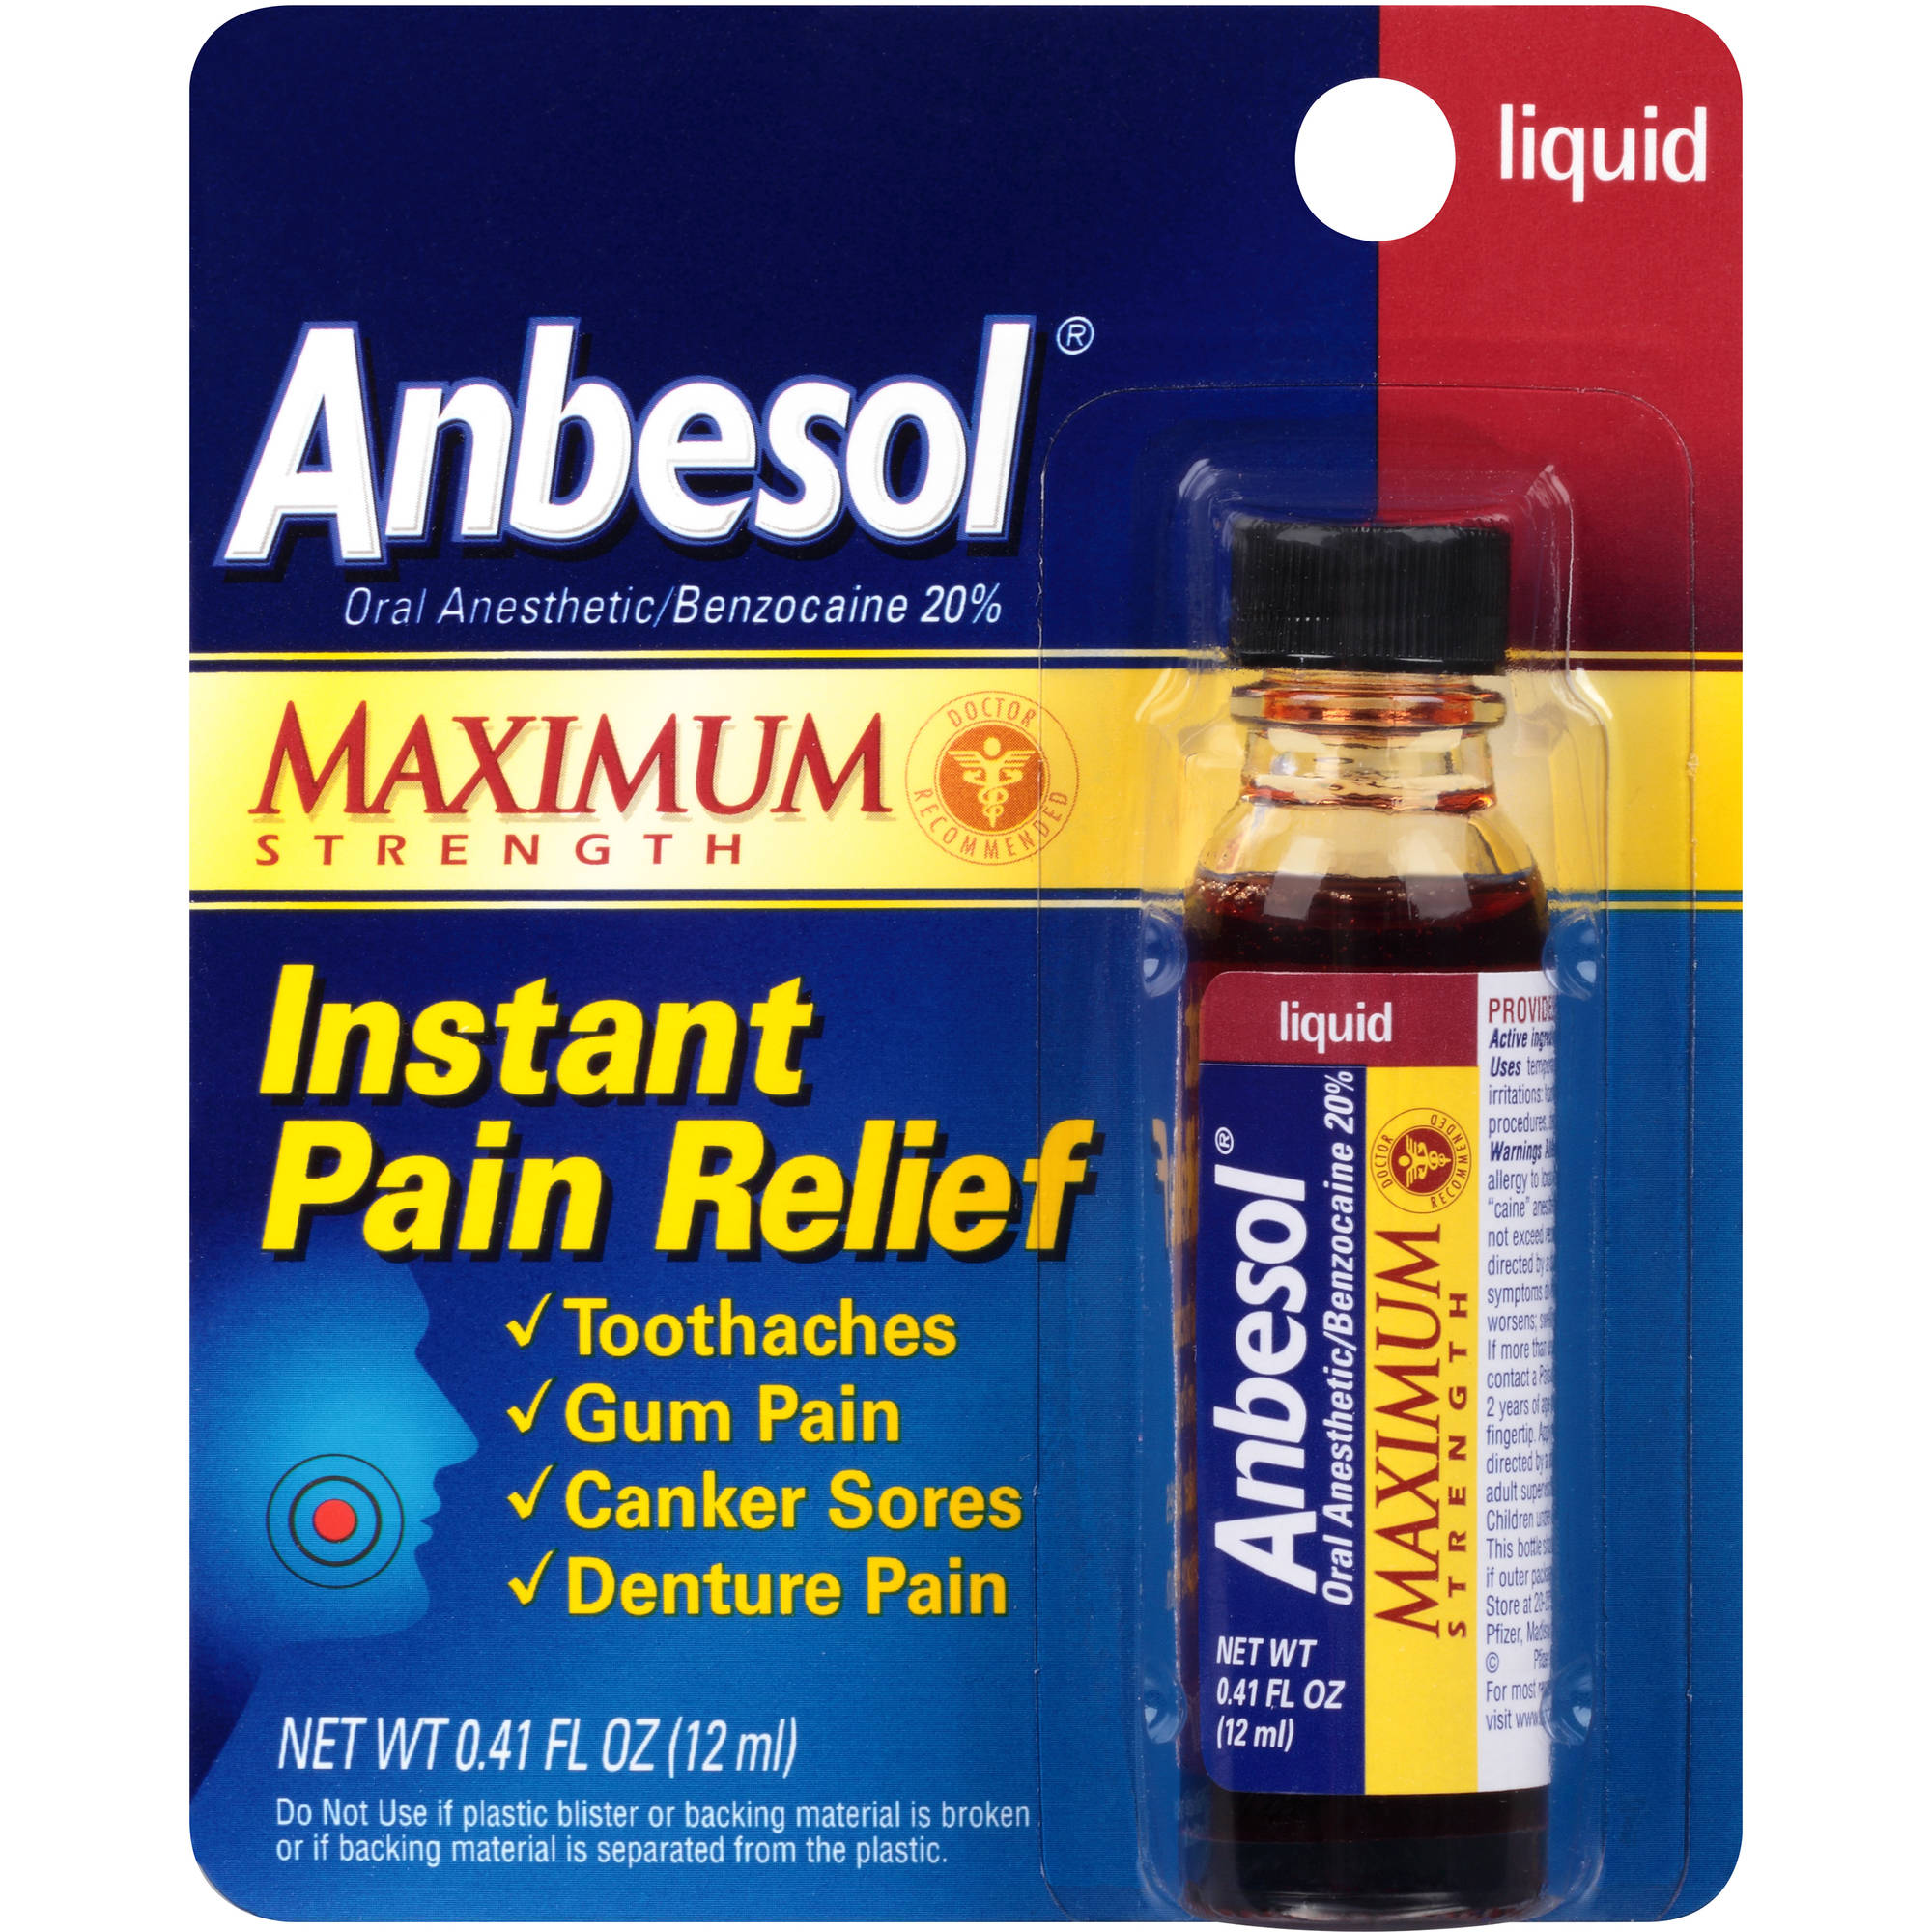 Anbesol Maximum Strength Oral Anesthetic Liquid 0.41 fl oz